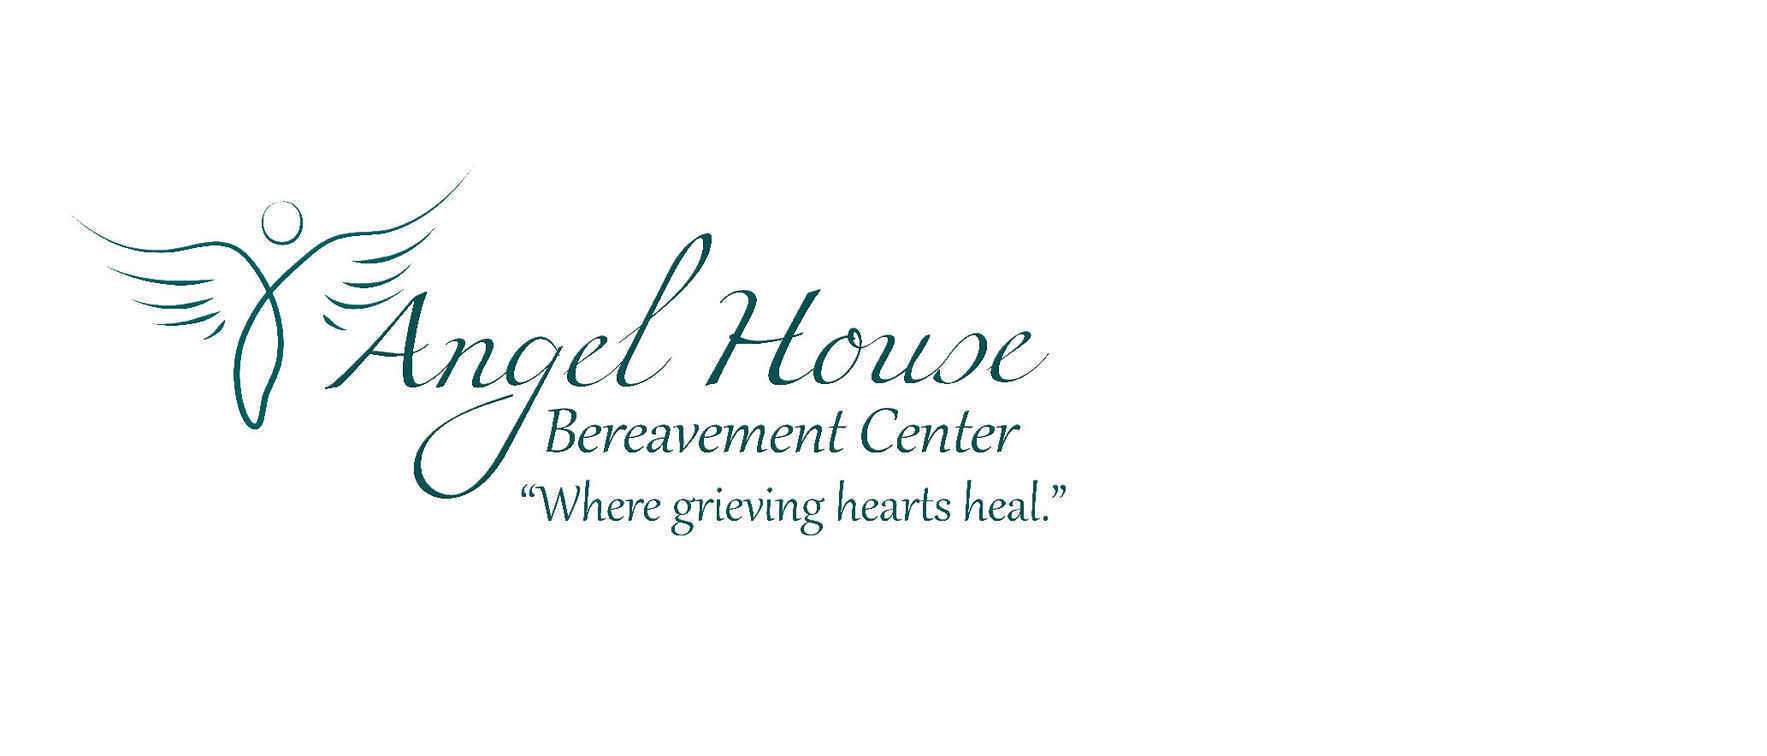 Donate Today To Support Angel House Bereavement Center image